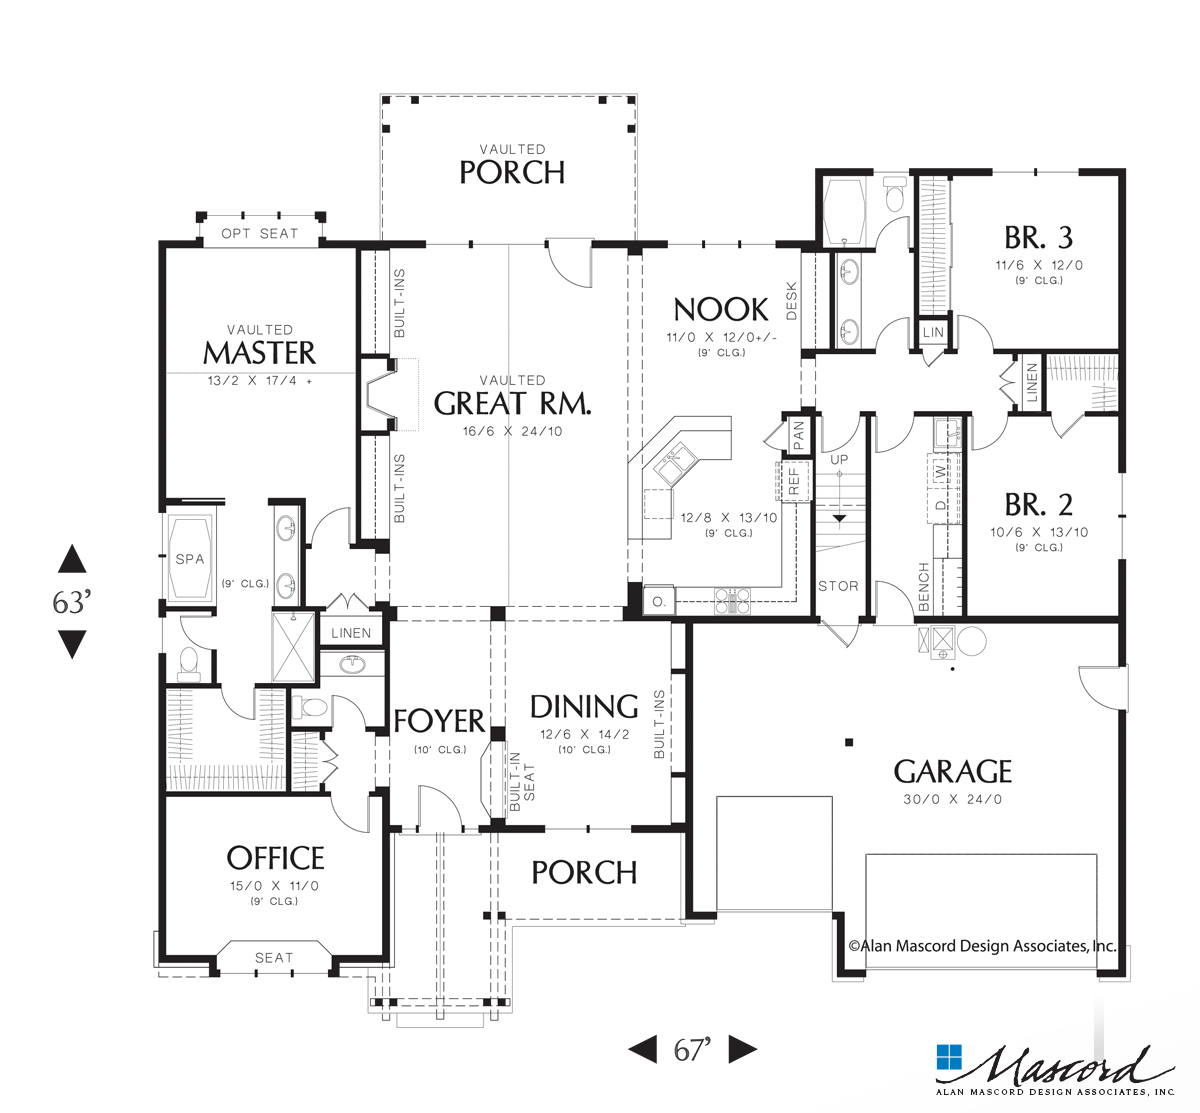 clipart royalty free library Drawing storage blueprint. Main floor plan of